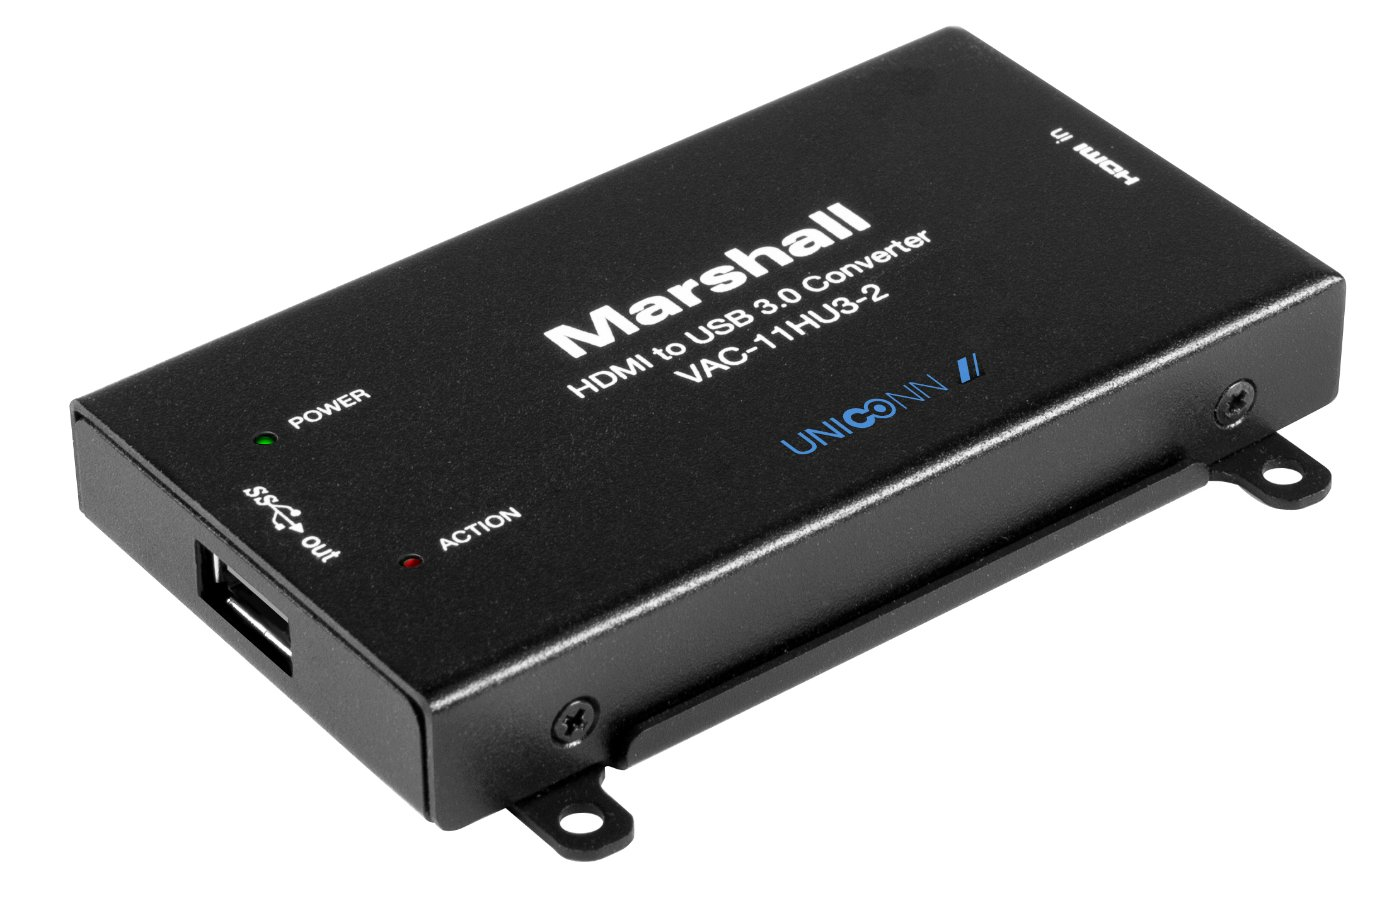 HDMI to USB 3.0 Converter